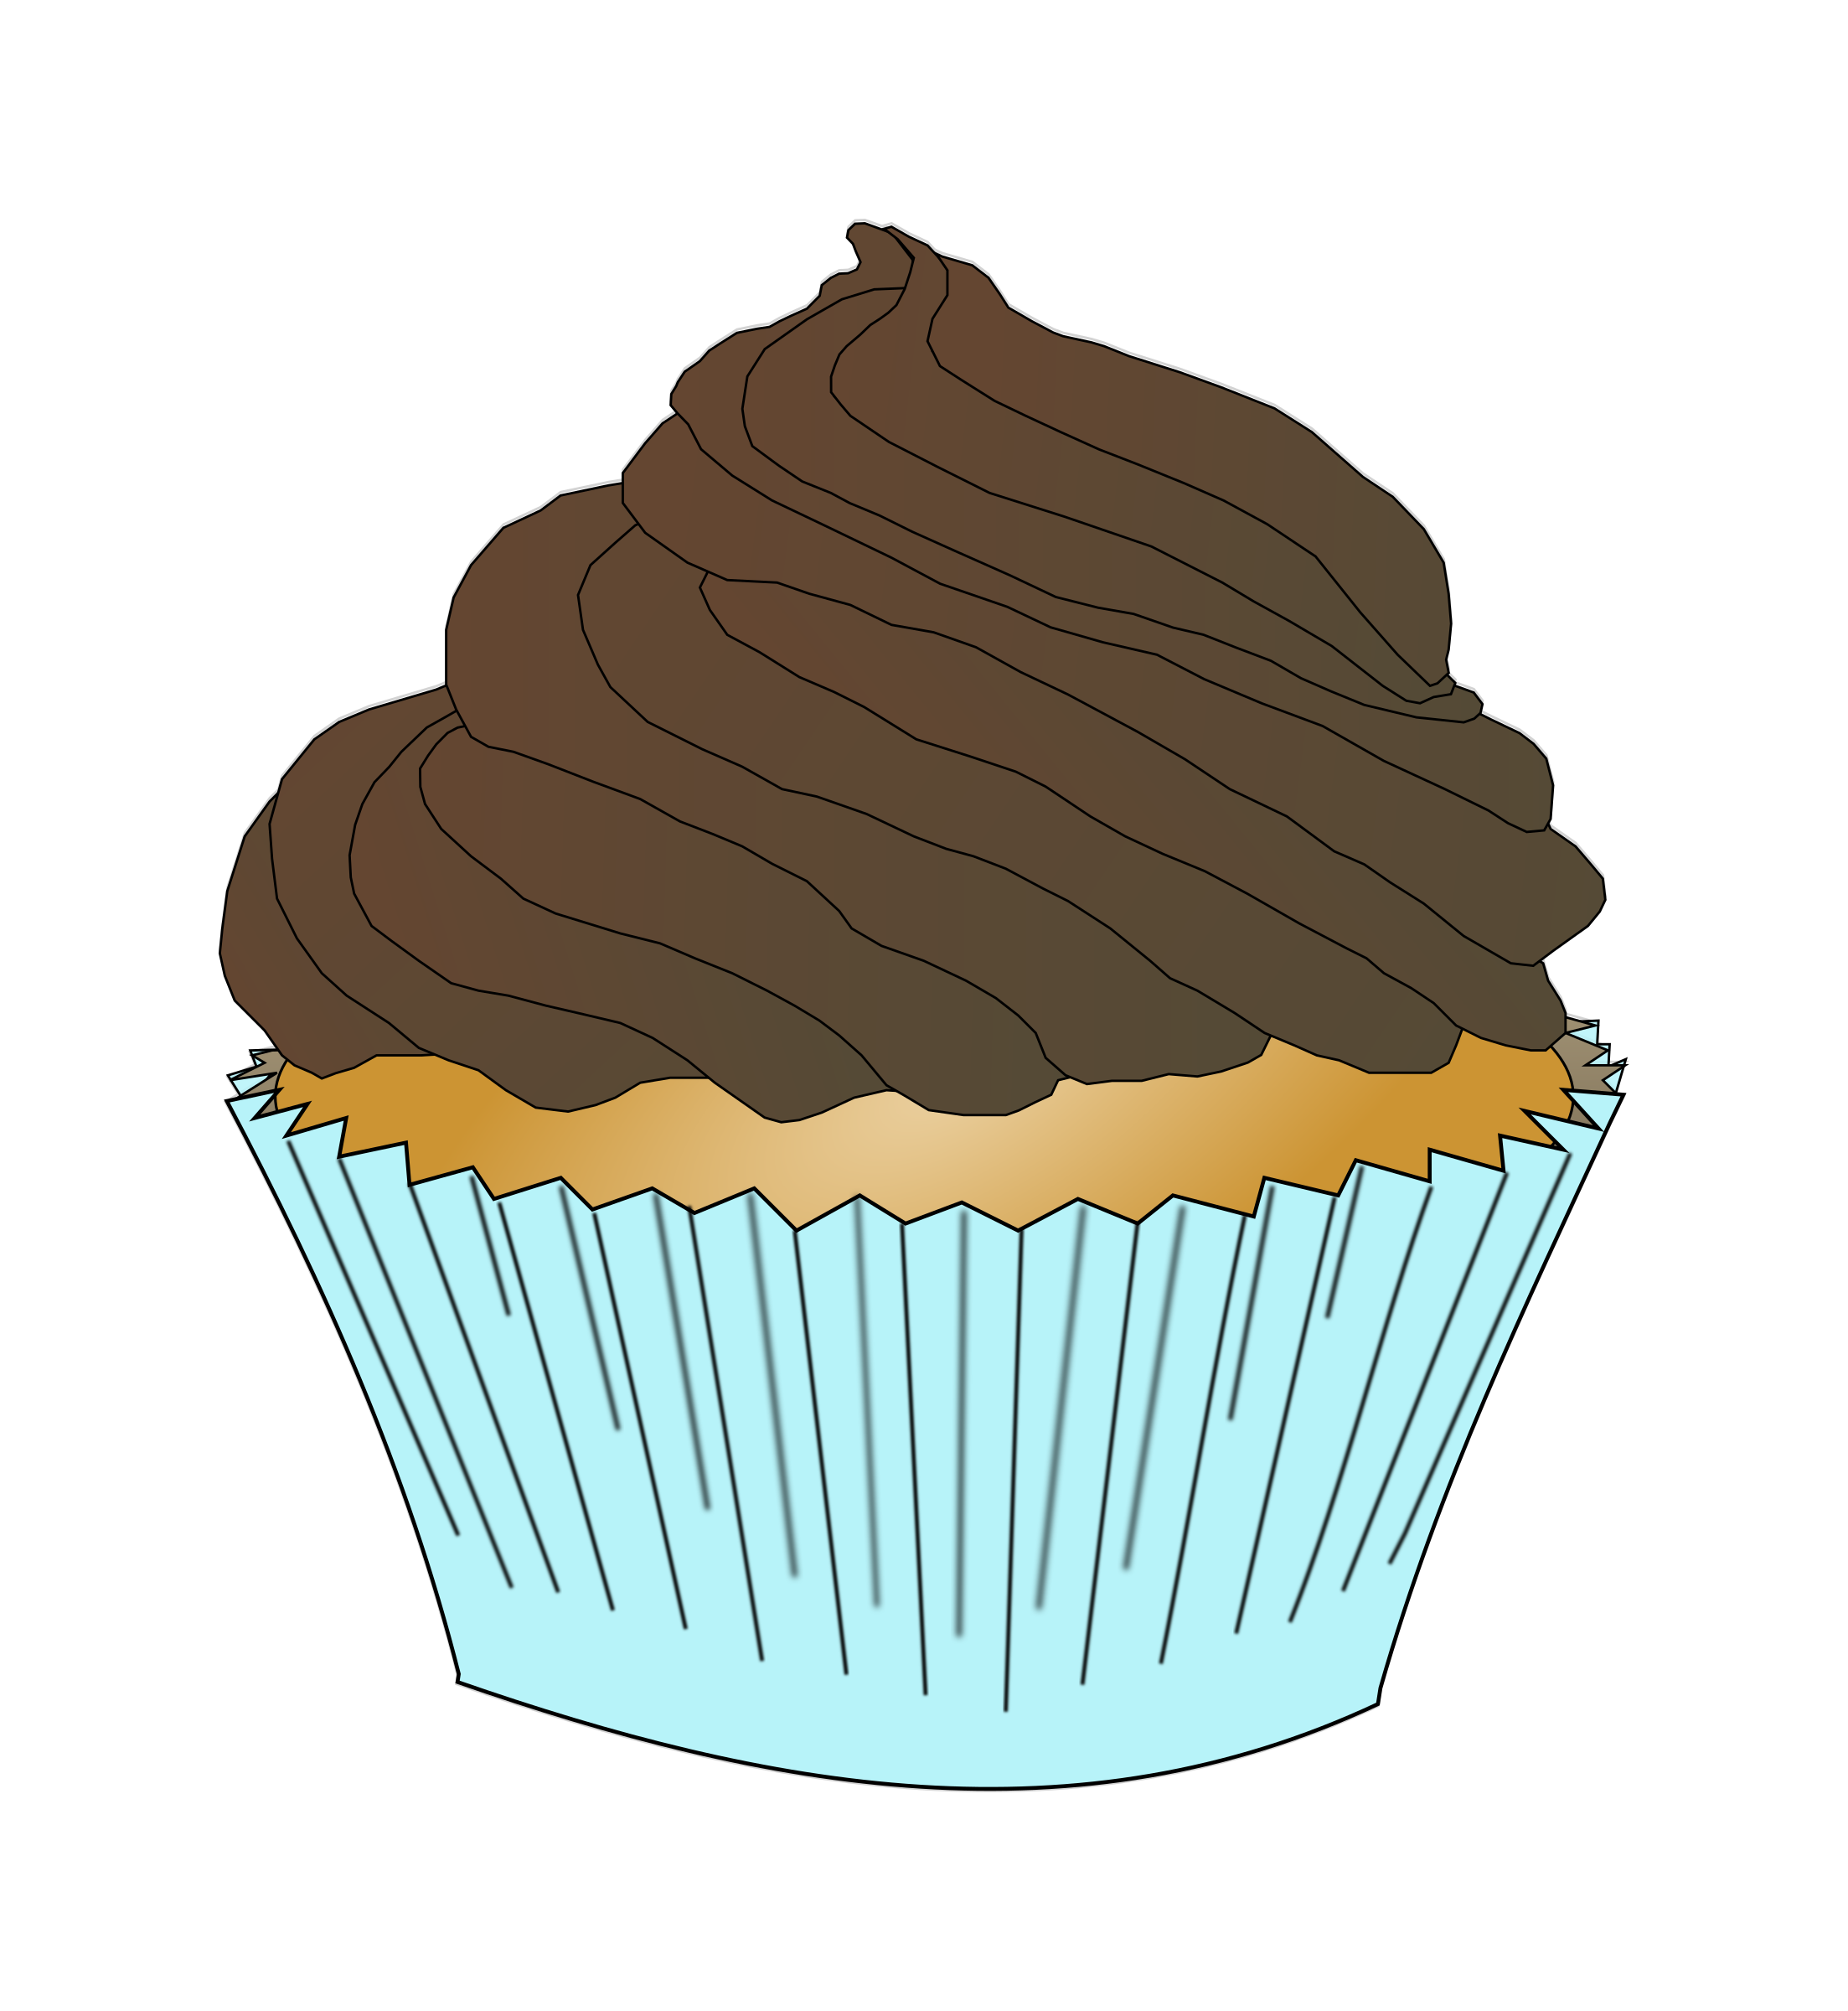 Chocolate Frosting Cupcake by PinkJellyfish